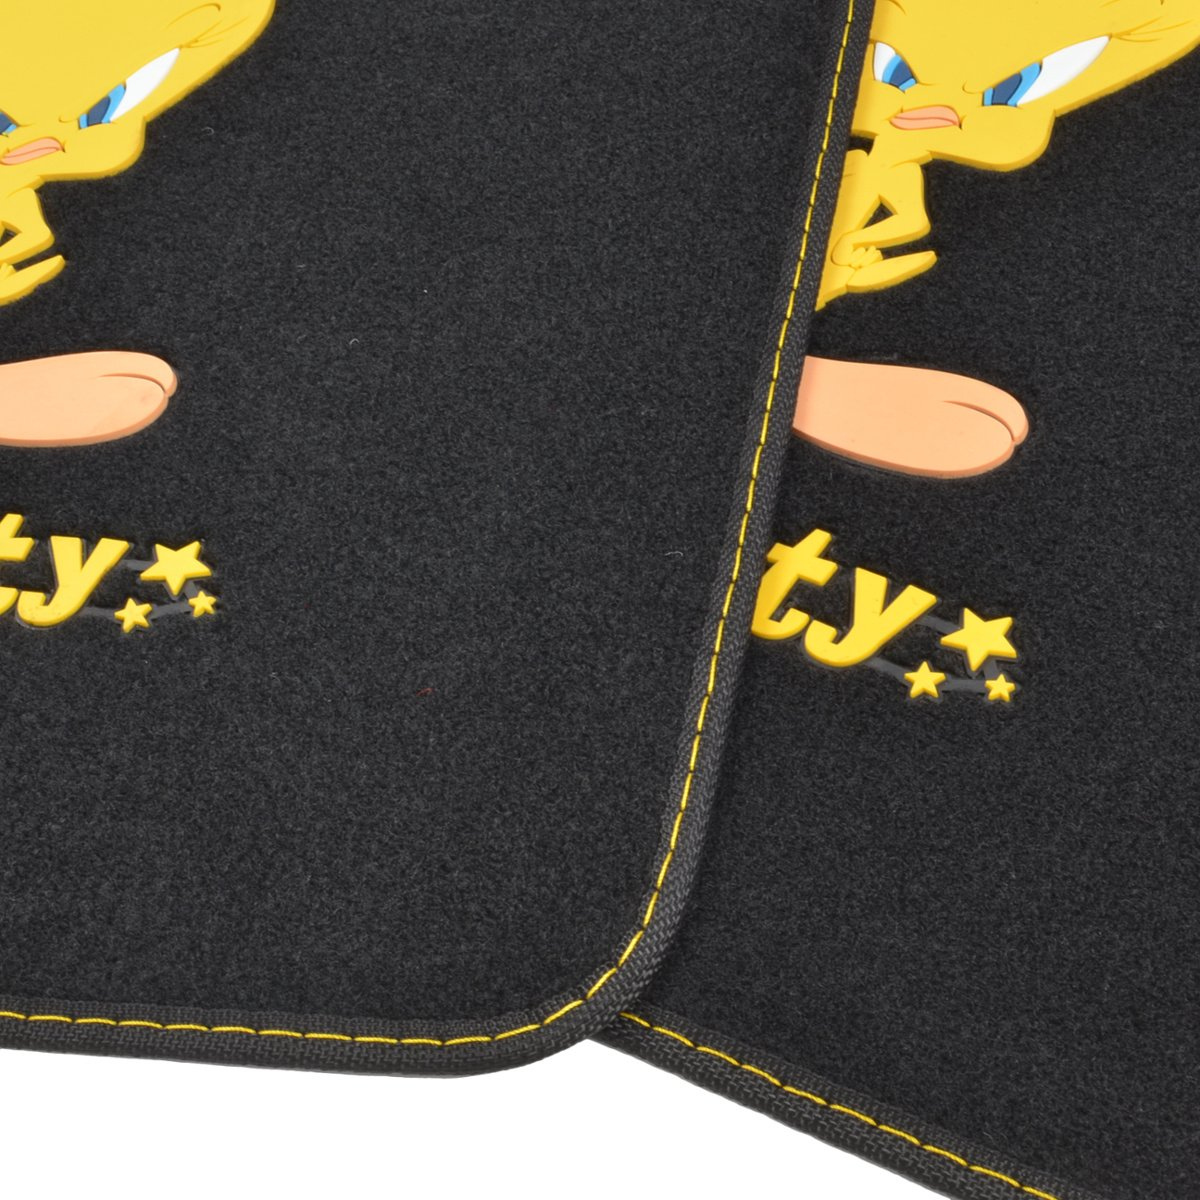 4PC Scooby Doo Head Sticking Out Tongue Front /& Rear Seat Car Truck SUV Carpet Floor Mats